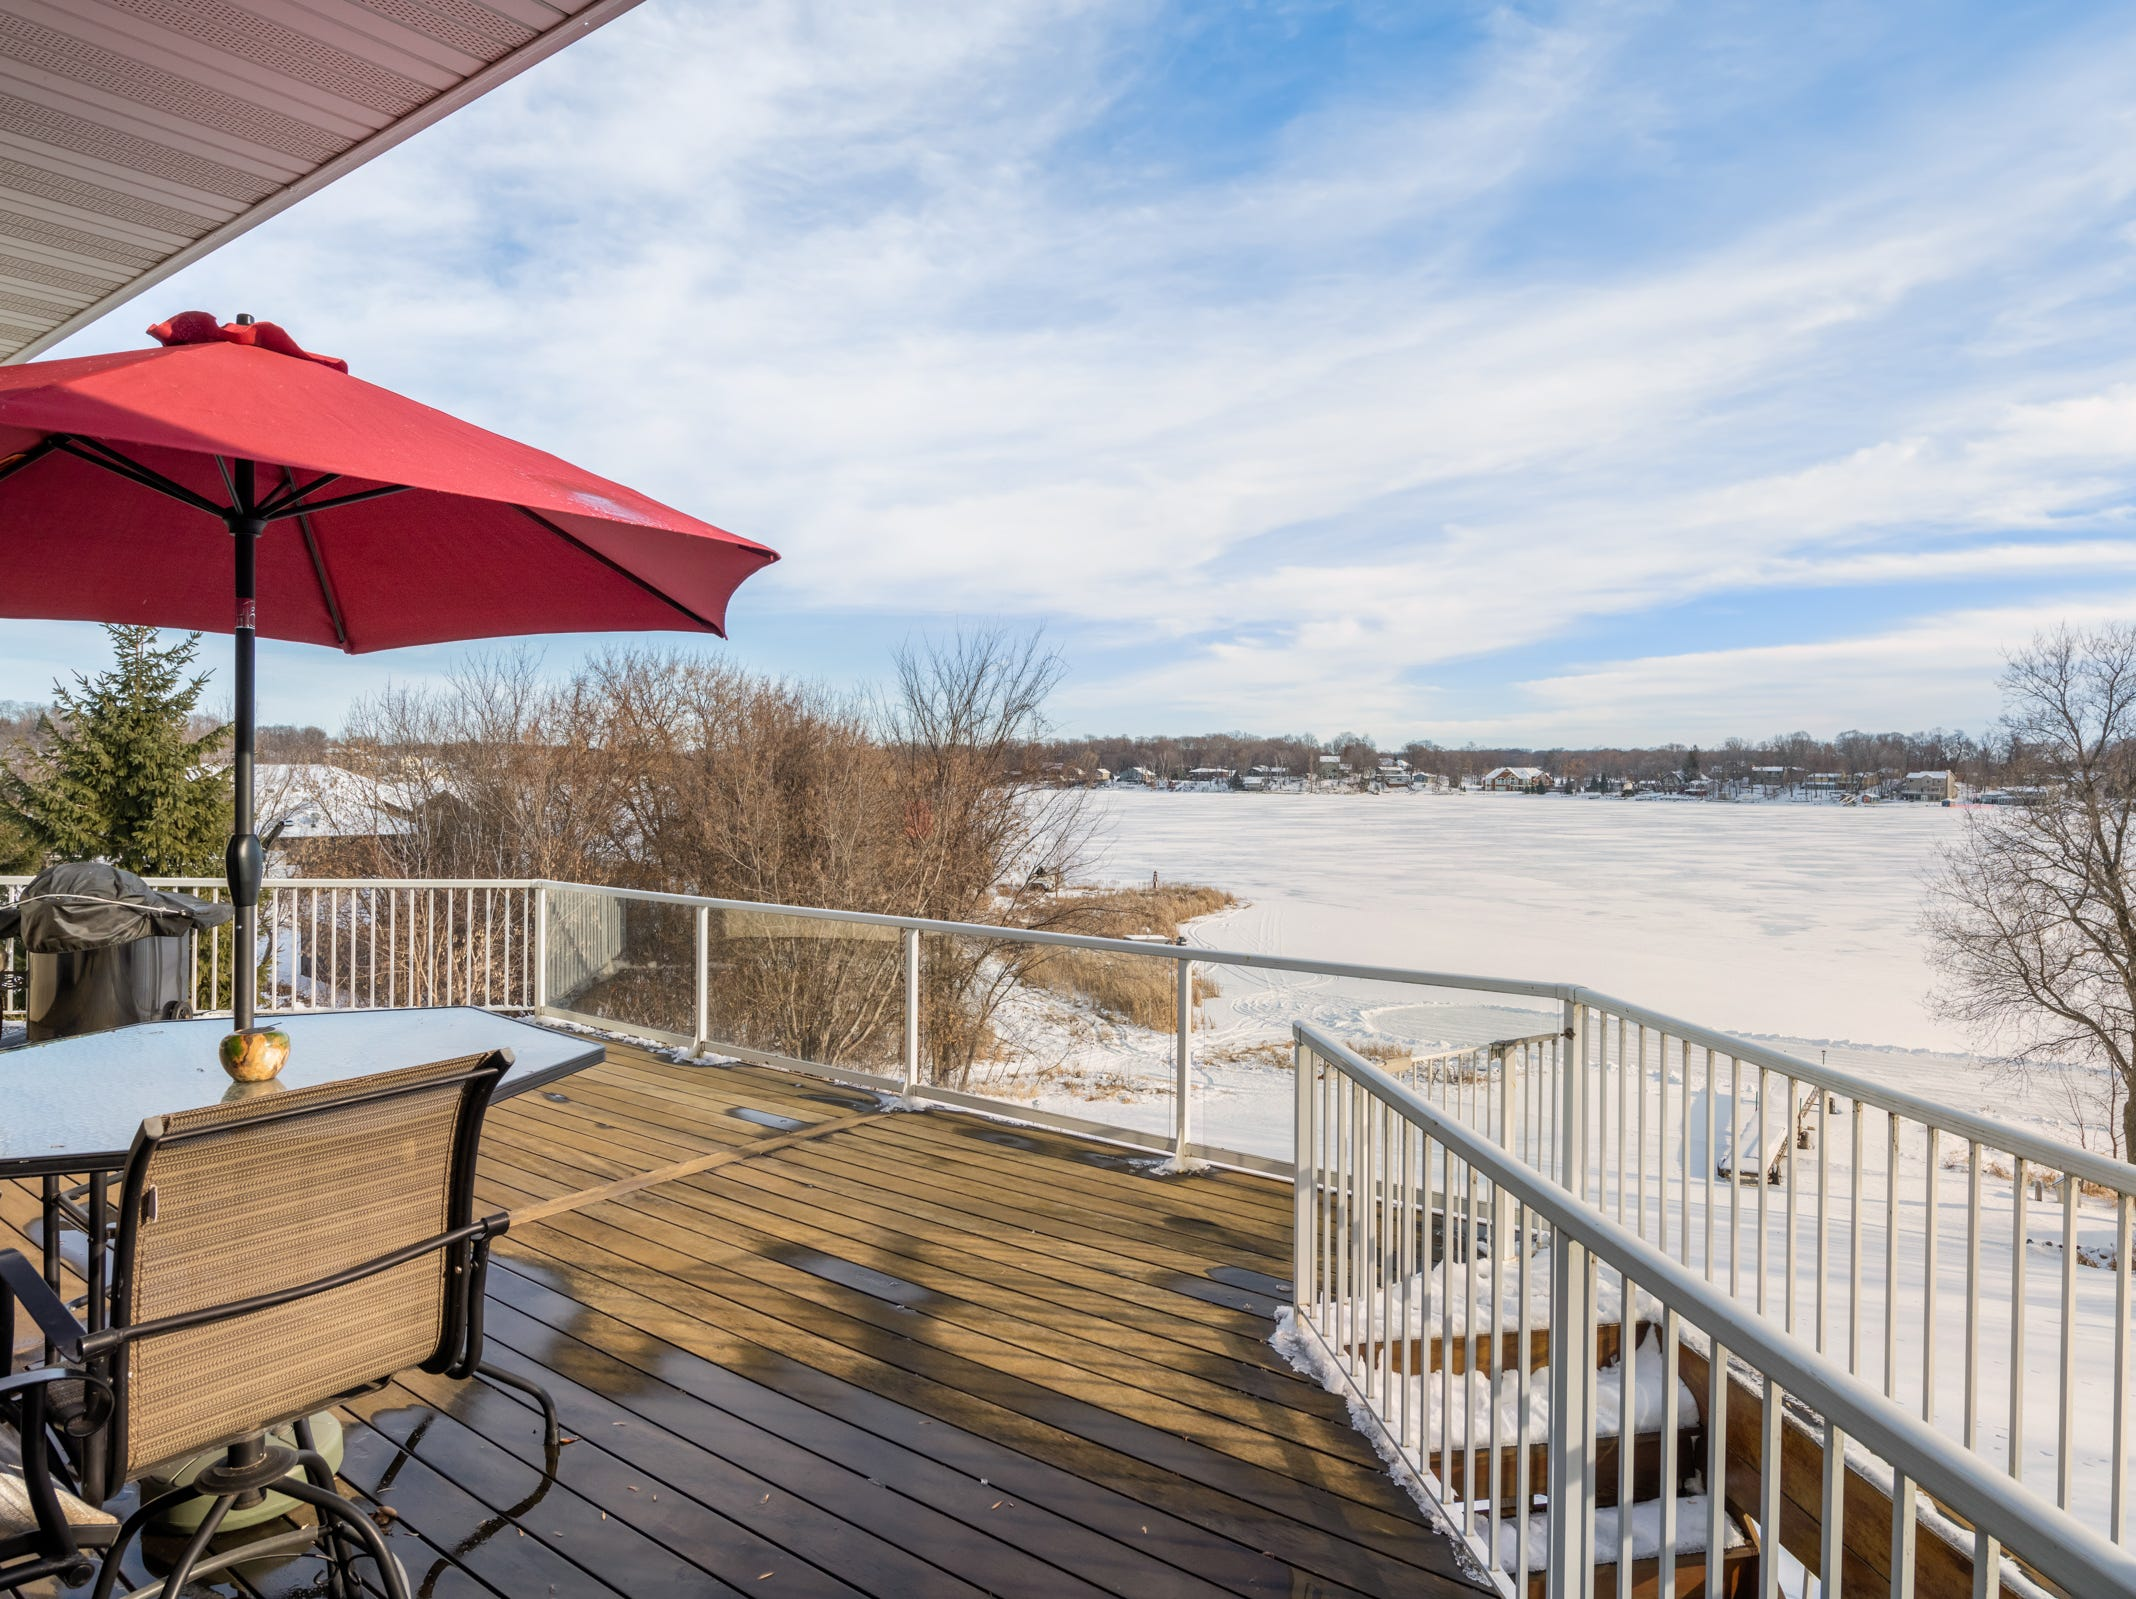 This walkout home has a Tigerwood deck with a glass railing.